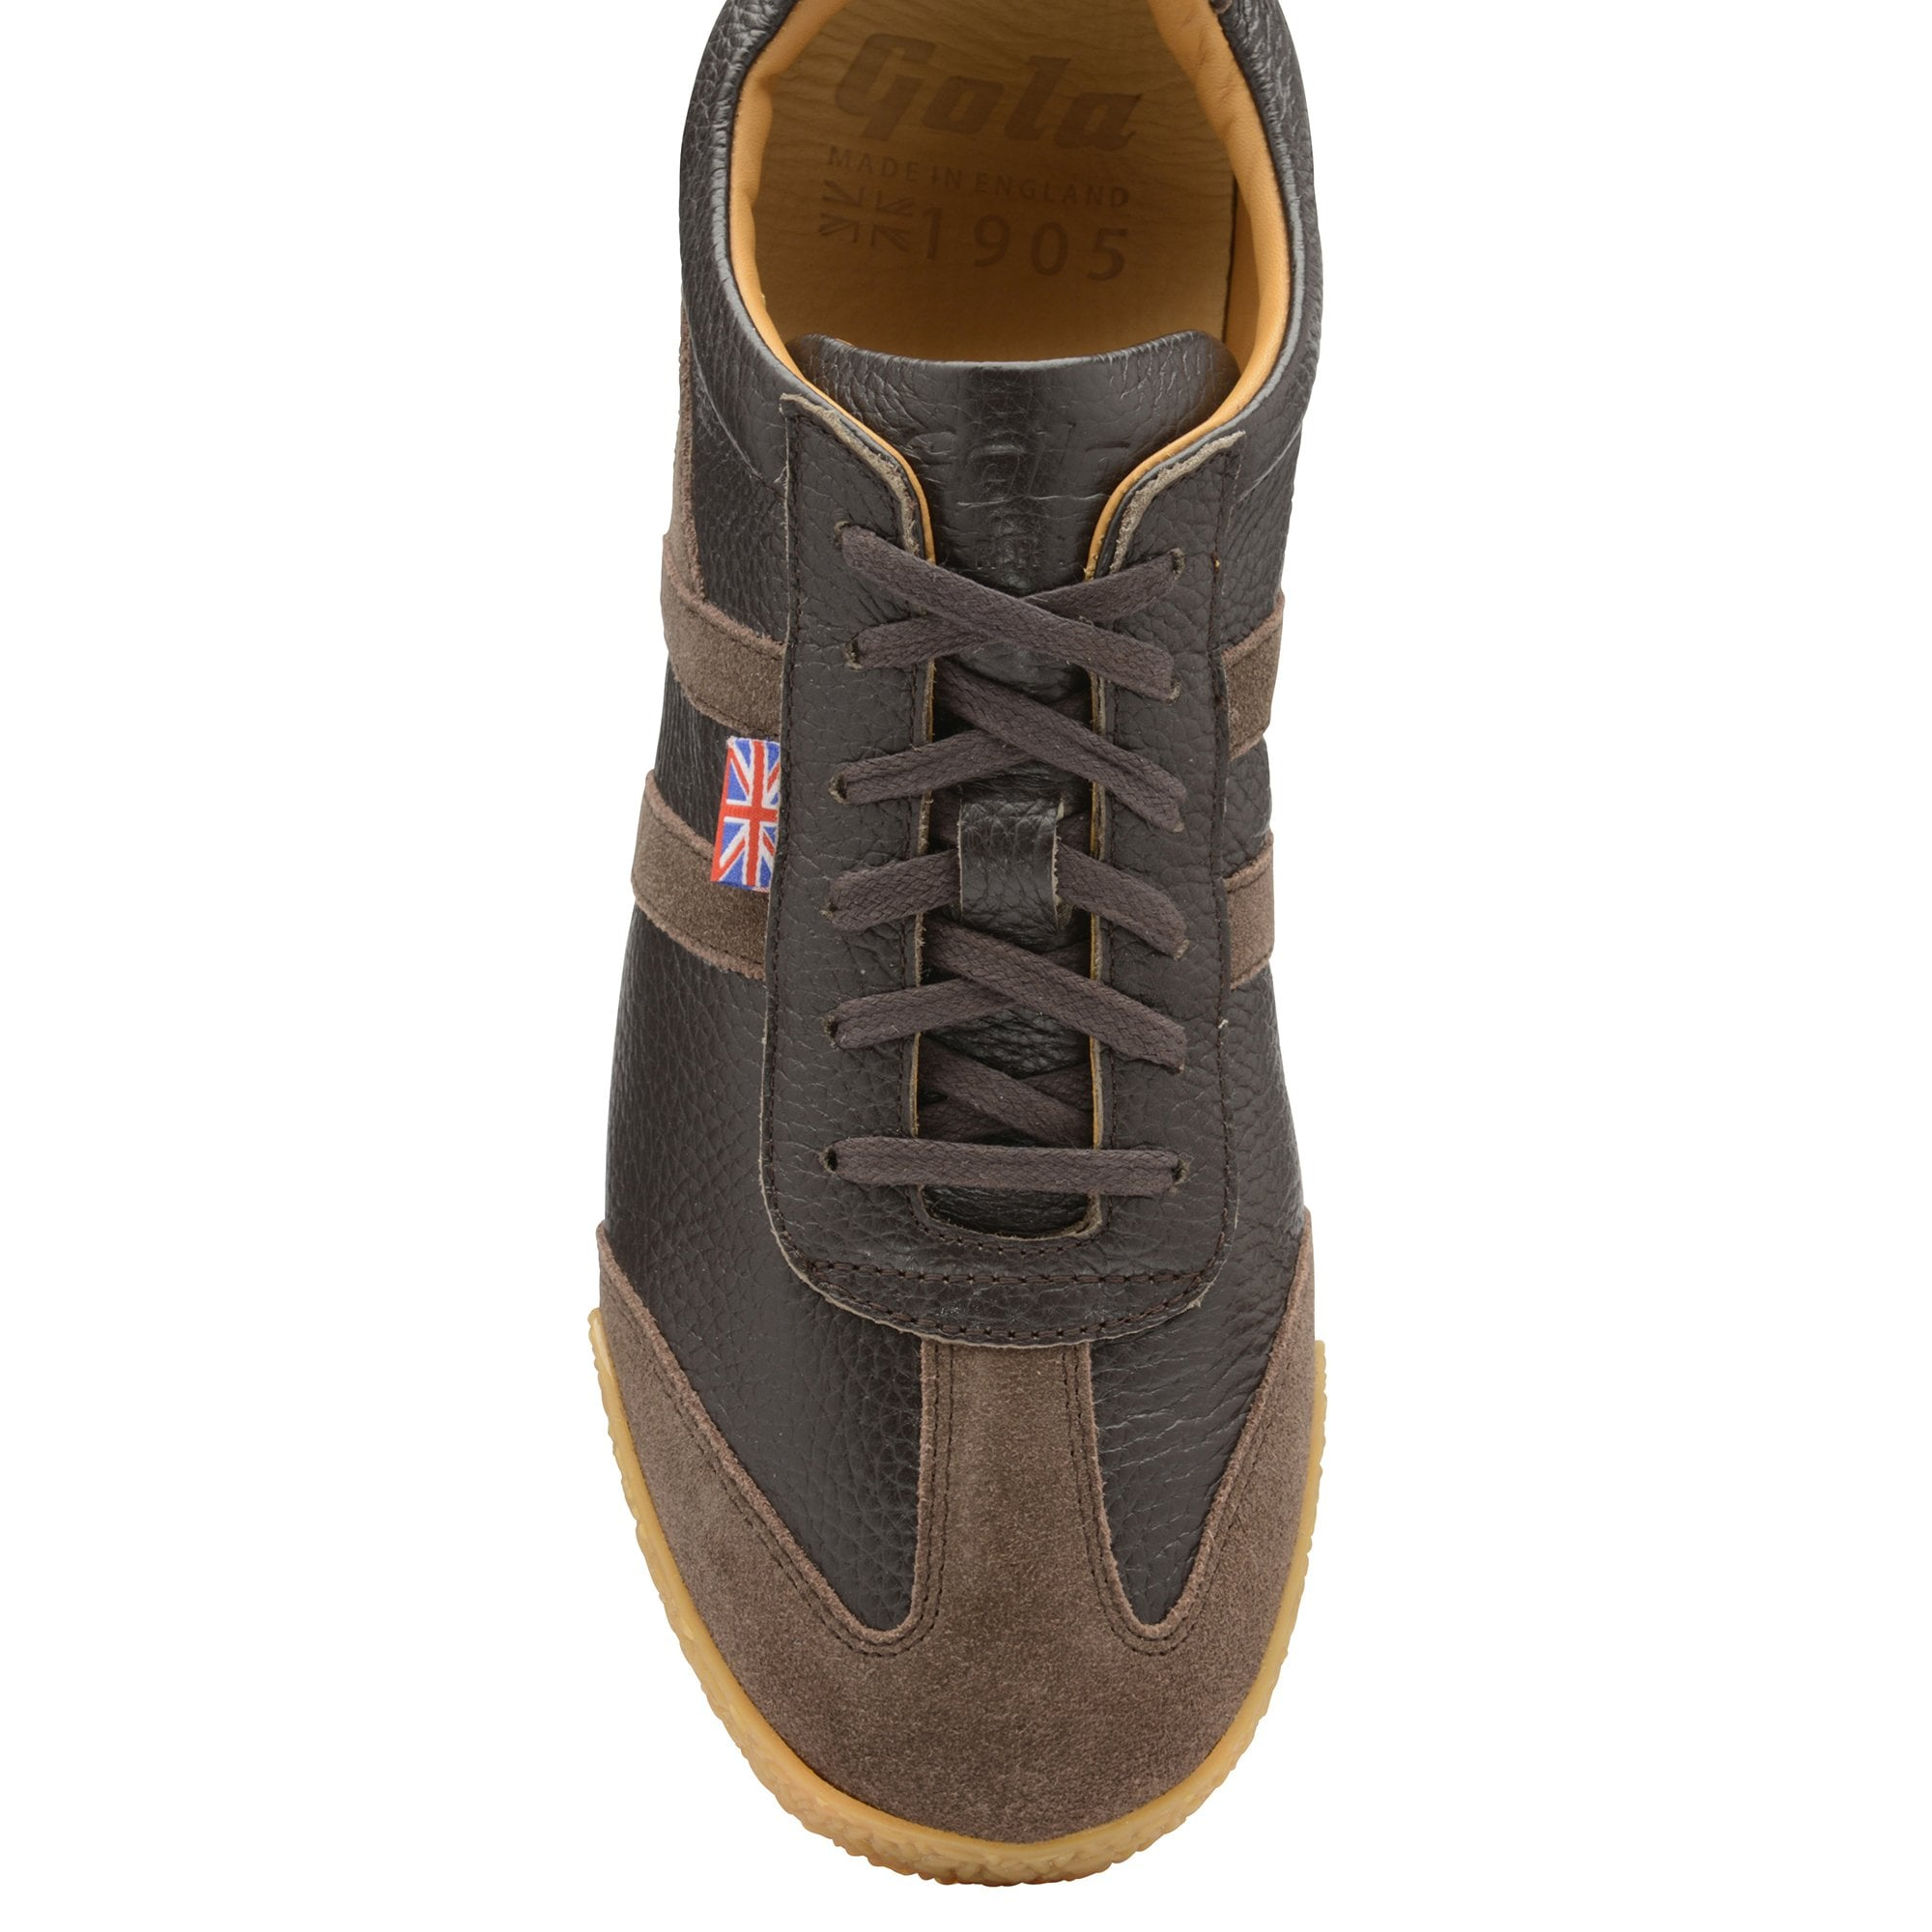 Men's Harrier 317 Sneakers